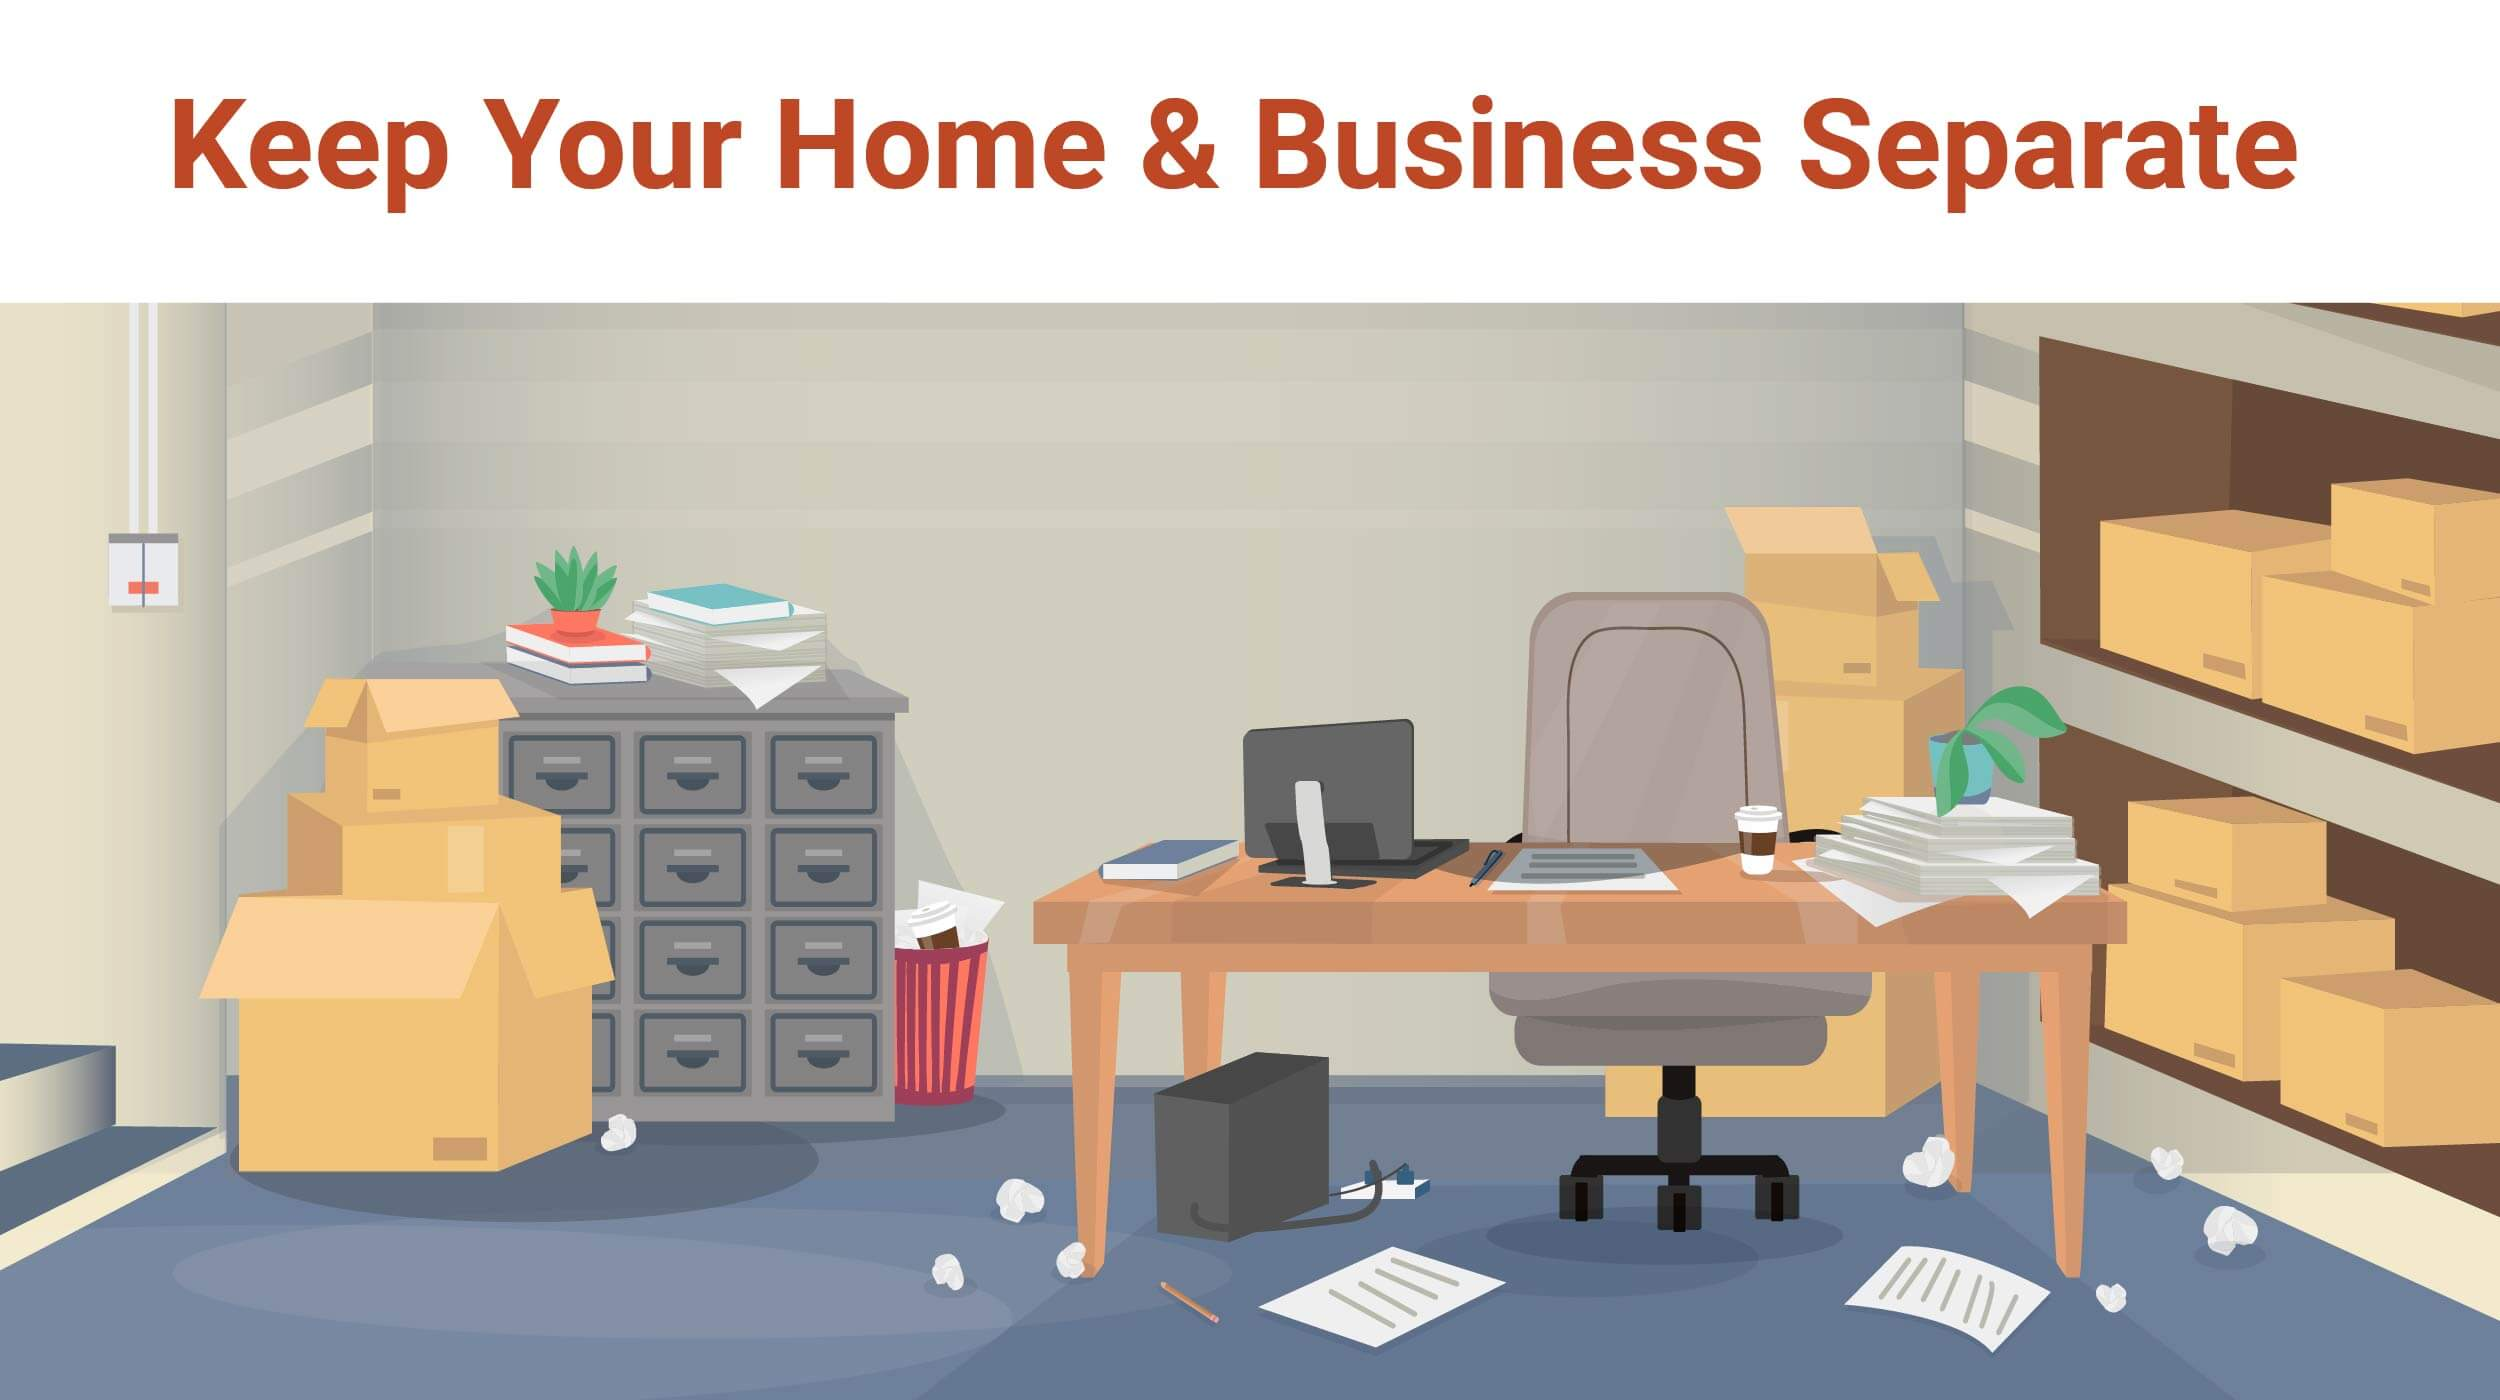 A cluttered garage office with boxes, a messy desk, and lots of room for improvement. Self storage can help keep your home and business separate.